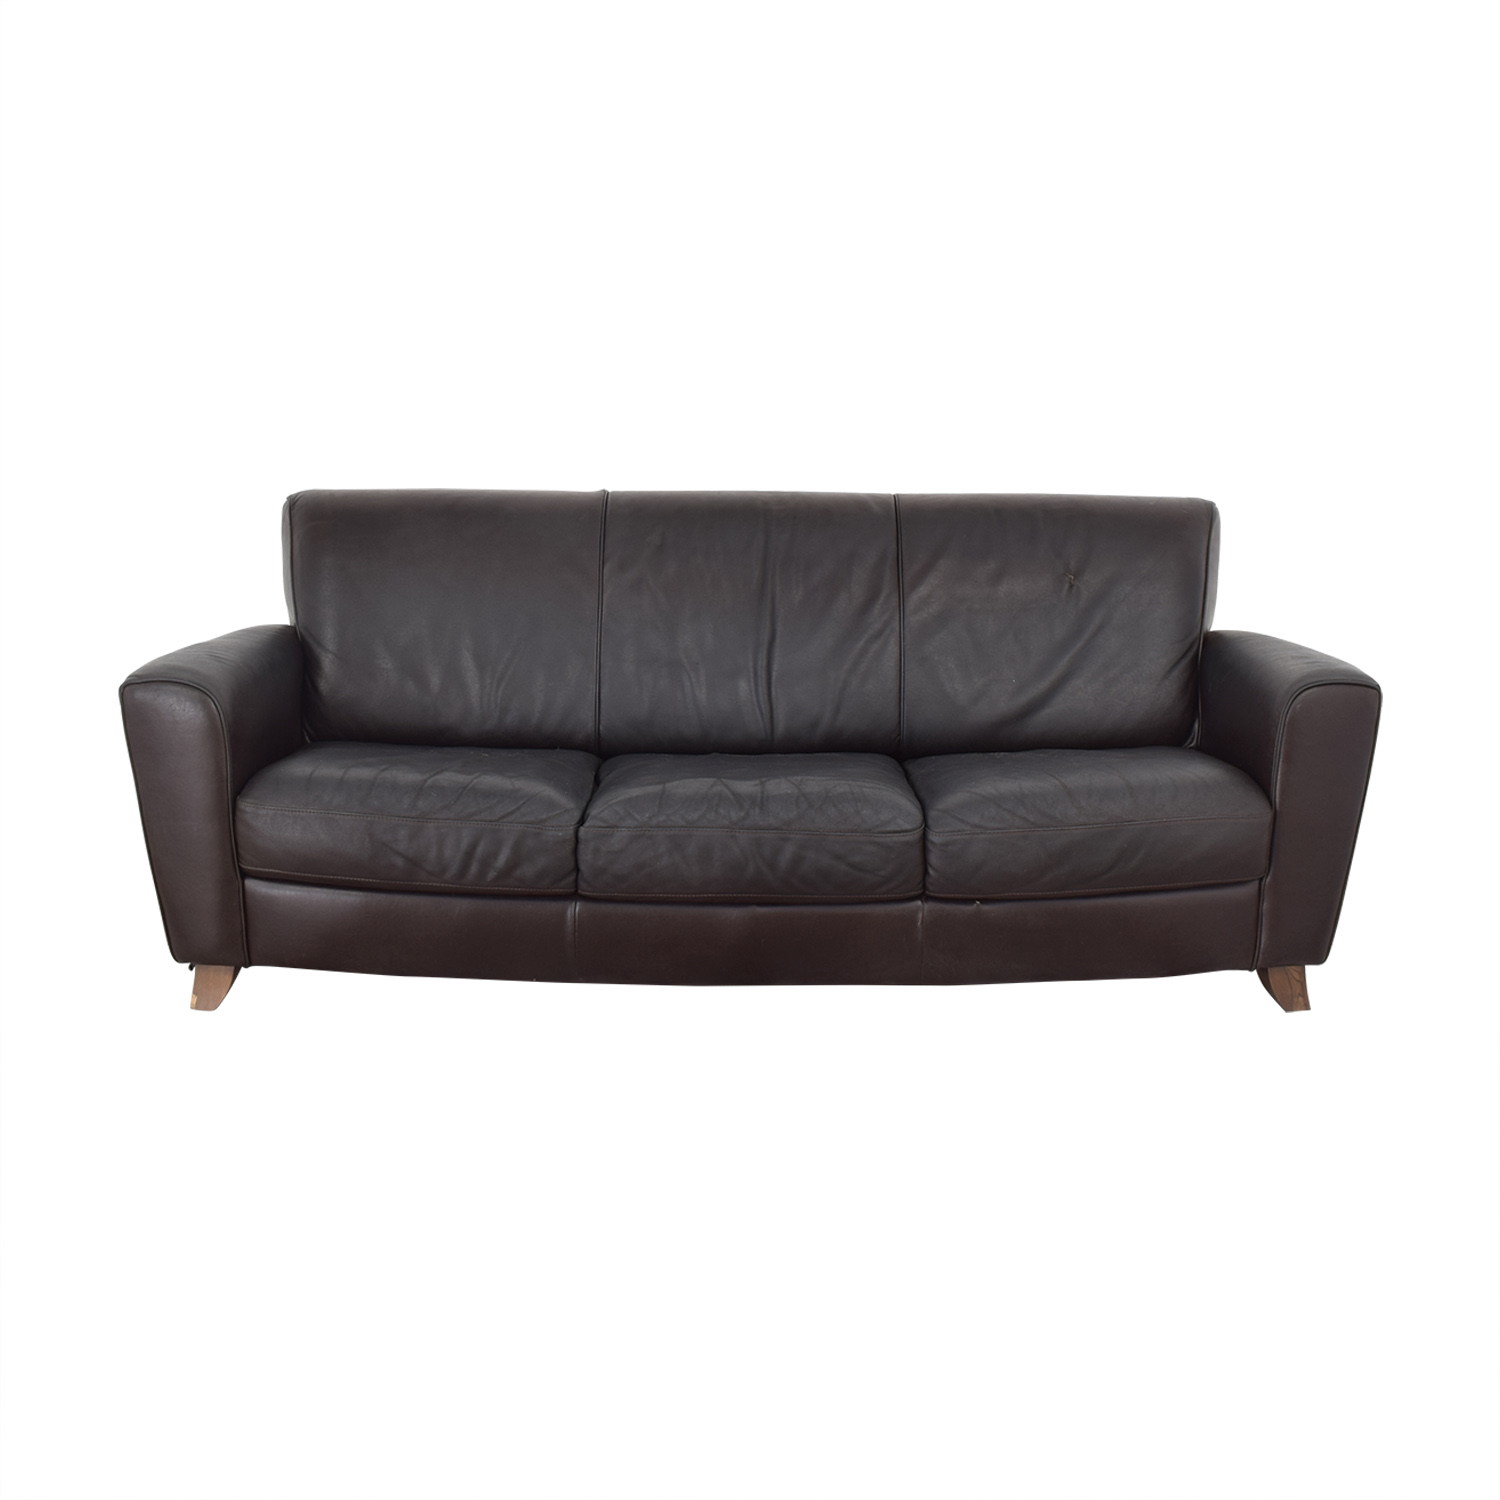 West Elm West Elm Three Cushion Couch for sale